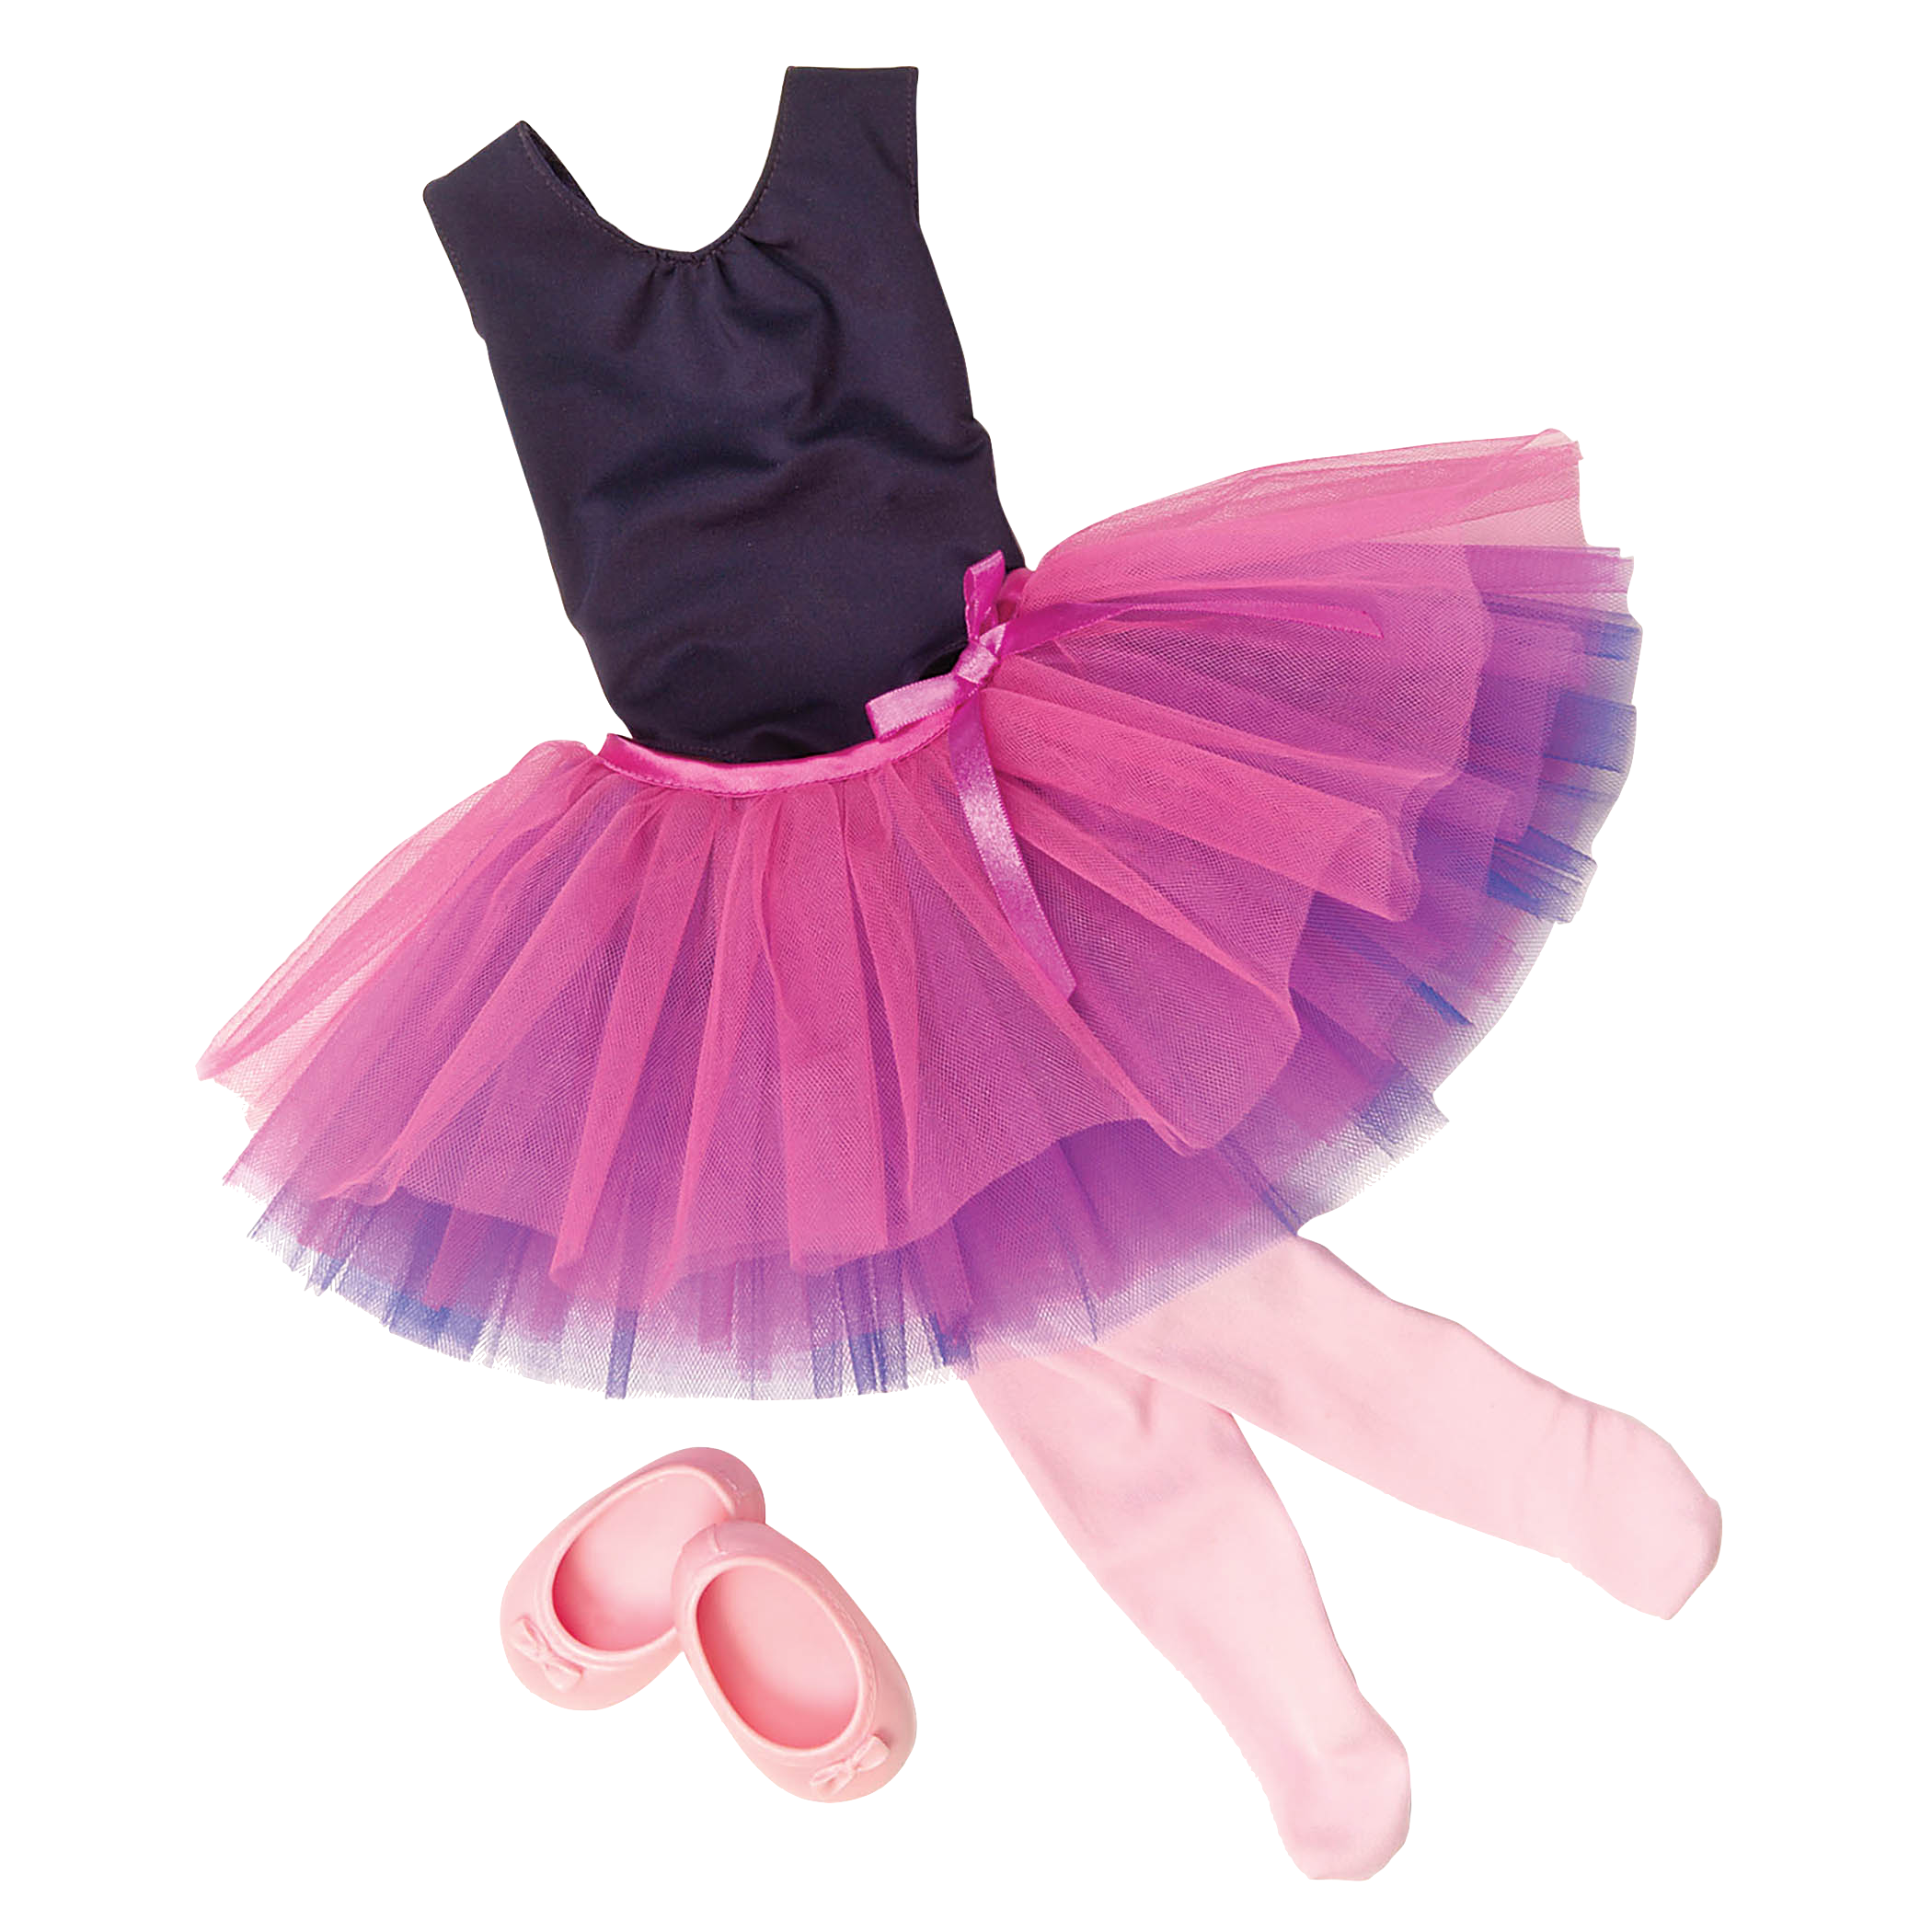 Dance Tulle You Drop ballet outfit all components